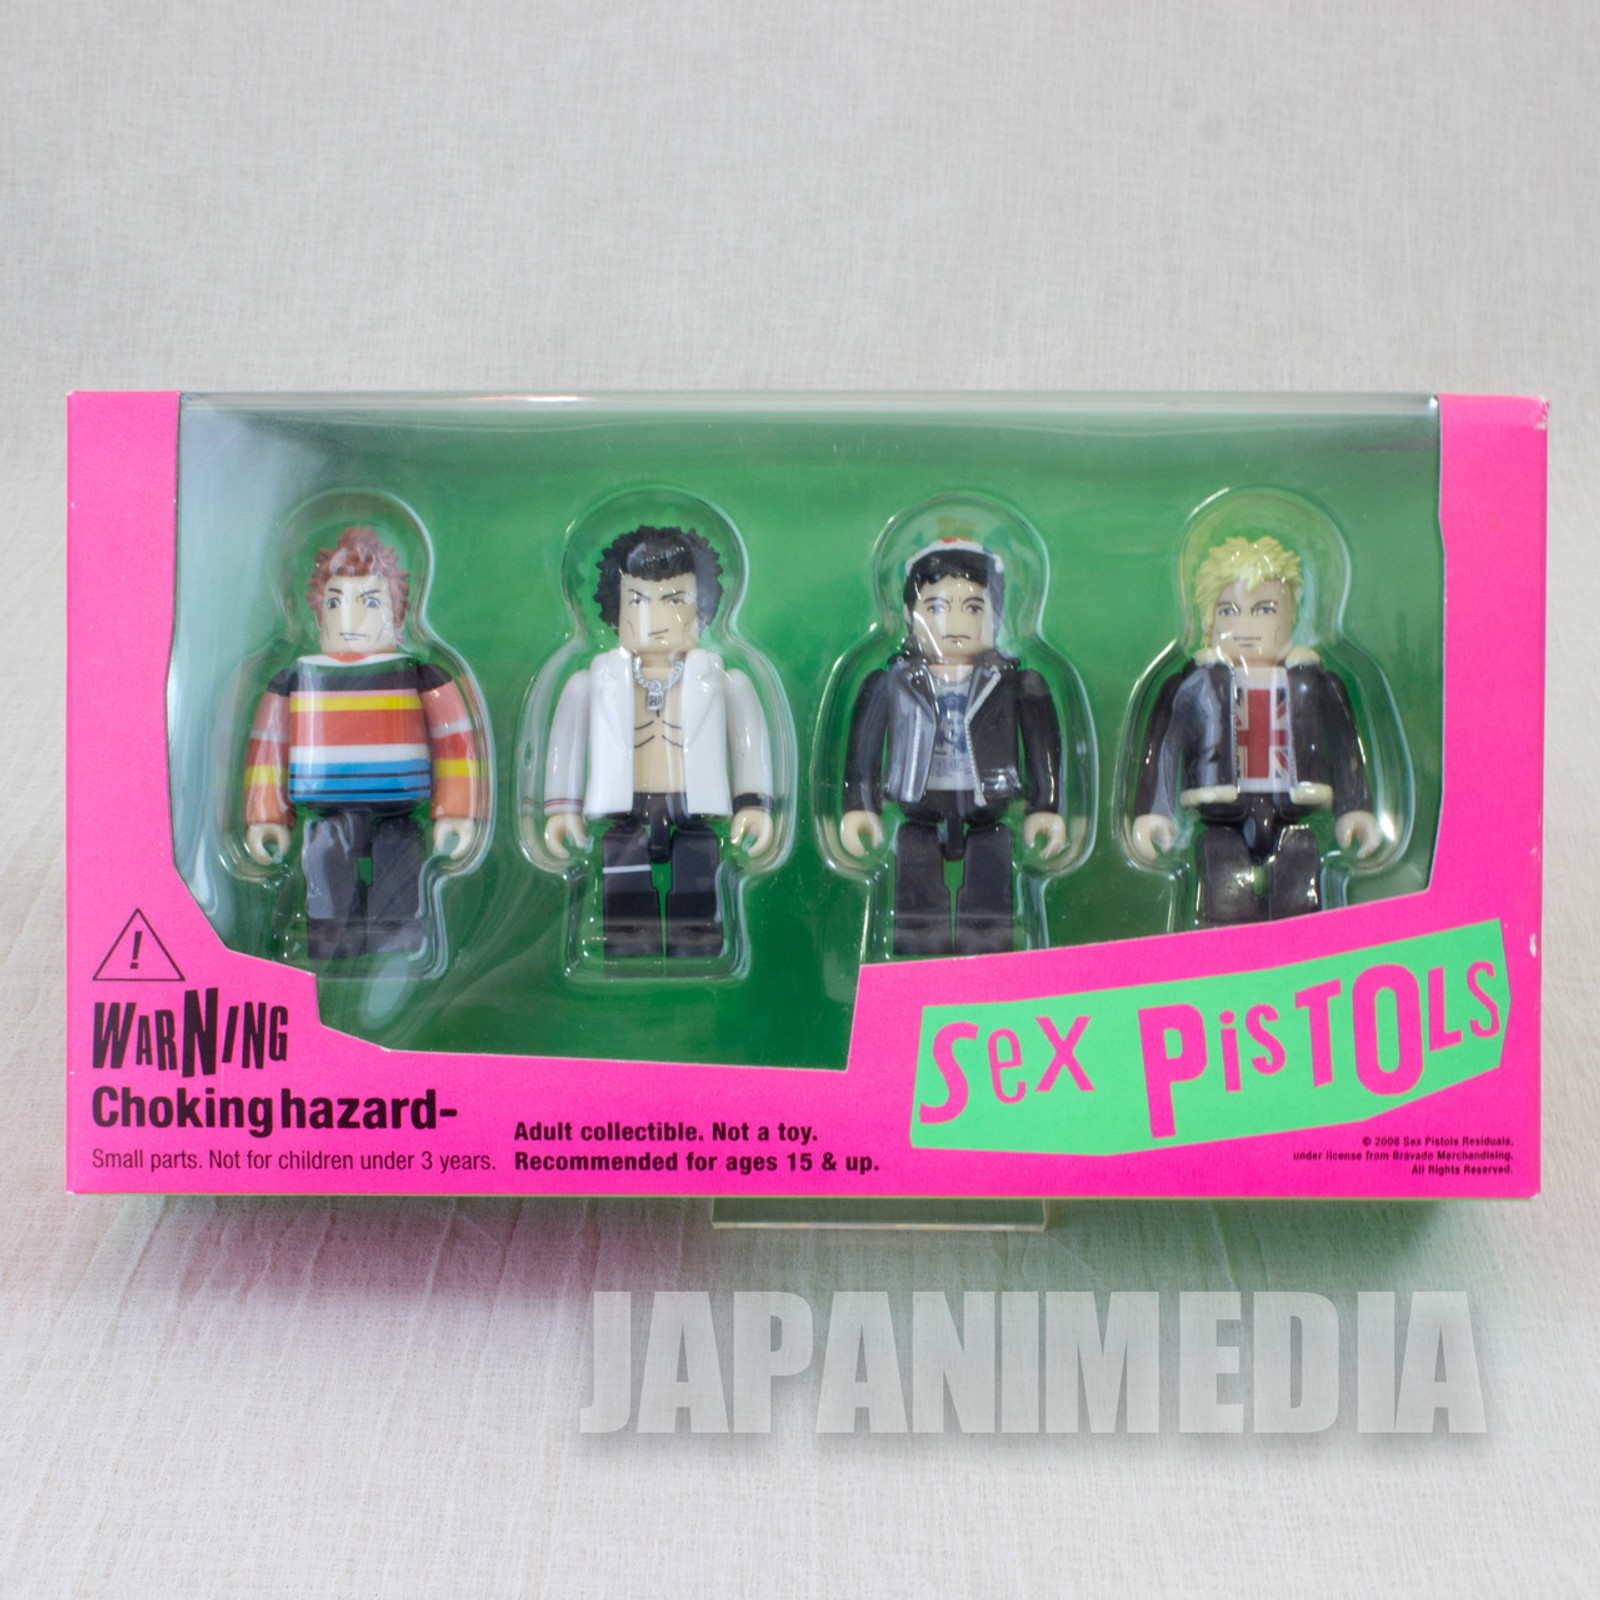 SEX PISTOLS Kubrick figure set Johnny Rotten Sid Vicious Medicom Toy JAPAN 2